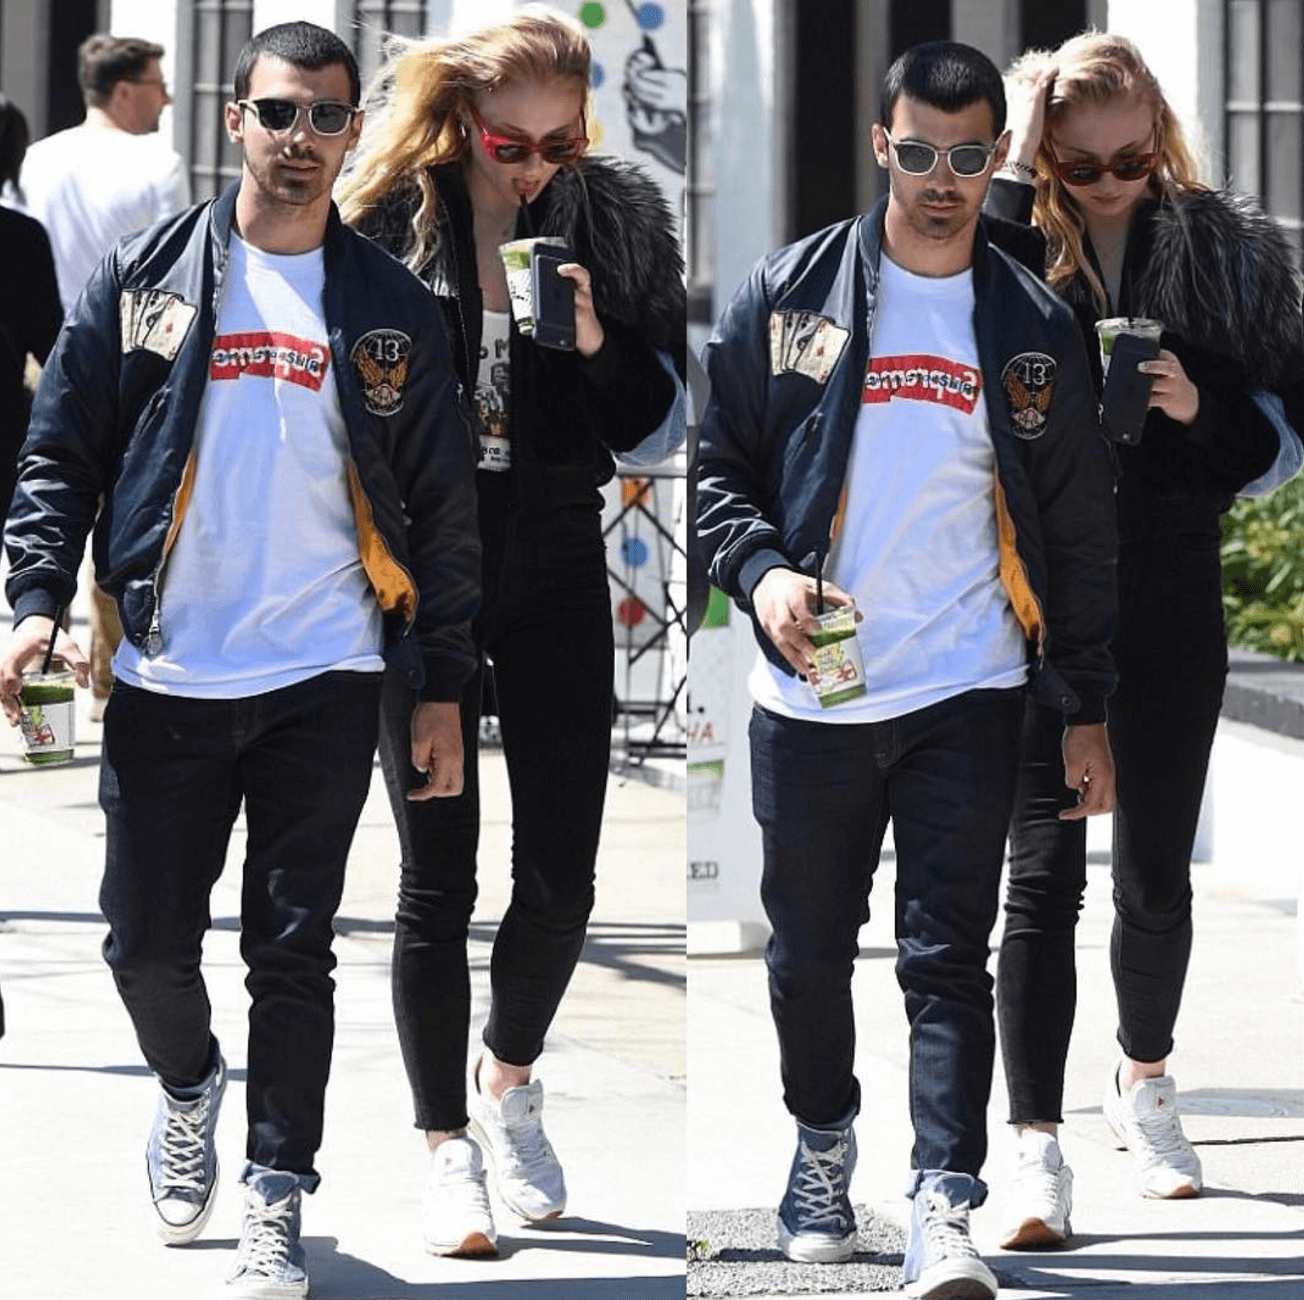 Joe Jonas in the Converse Chuck Taylor High Sneakers & Sophie Turner in the Reebok Classics